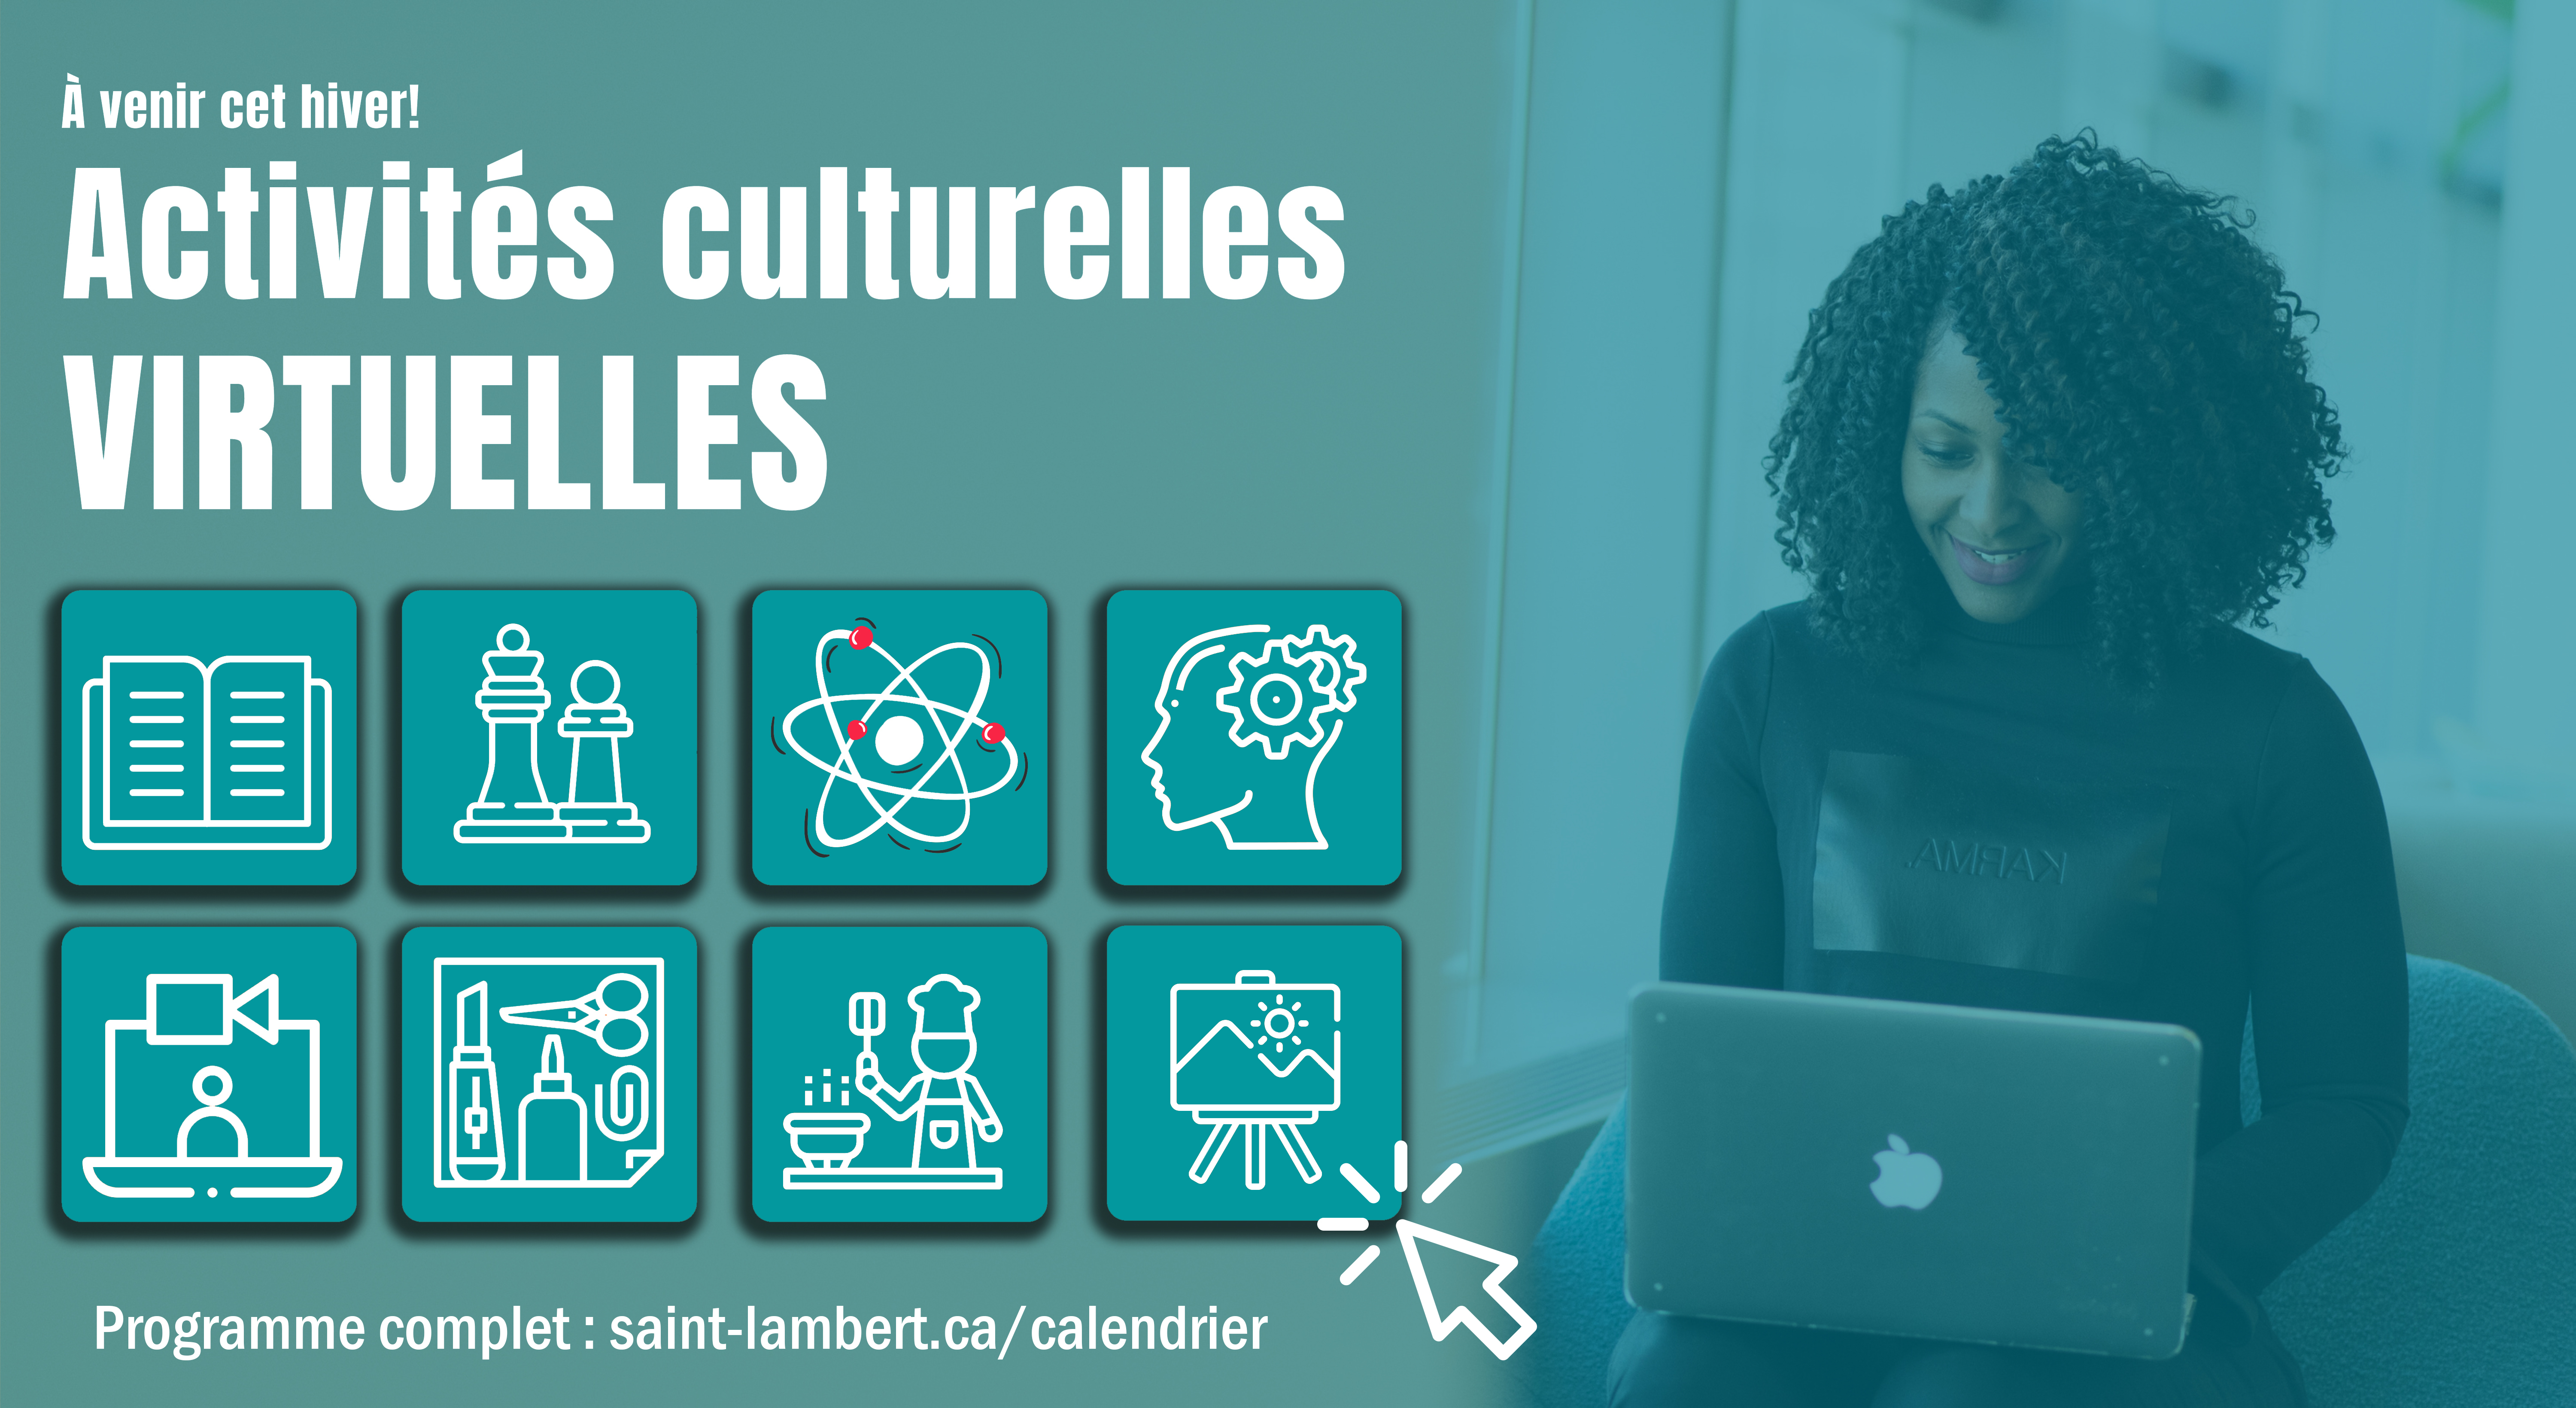 The City of Saint-Lambert offers you a completely virtual cultural program!